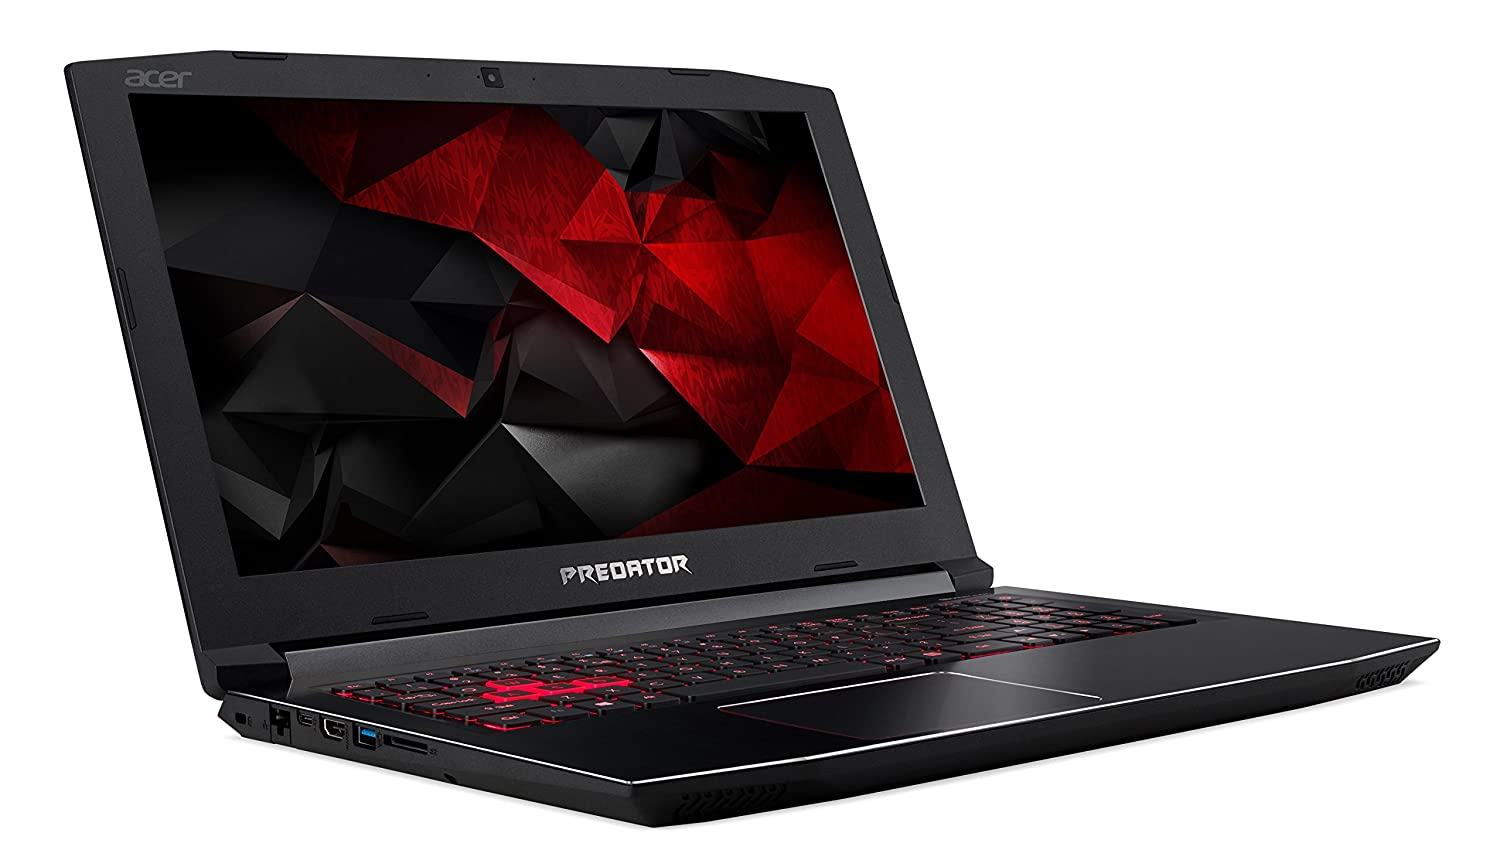 "Acer Predator Helios 300 Gaming Laptop, Intel Core i7, GeForce GTX 1060, 15.6"" Full HD, 16GB DDR4, 256GB SSD, G3-571-77QK"